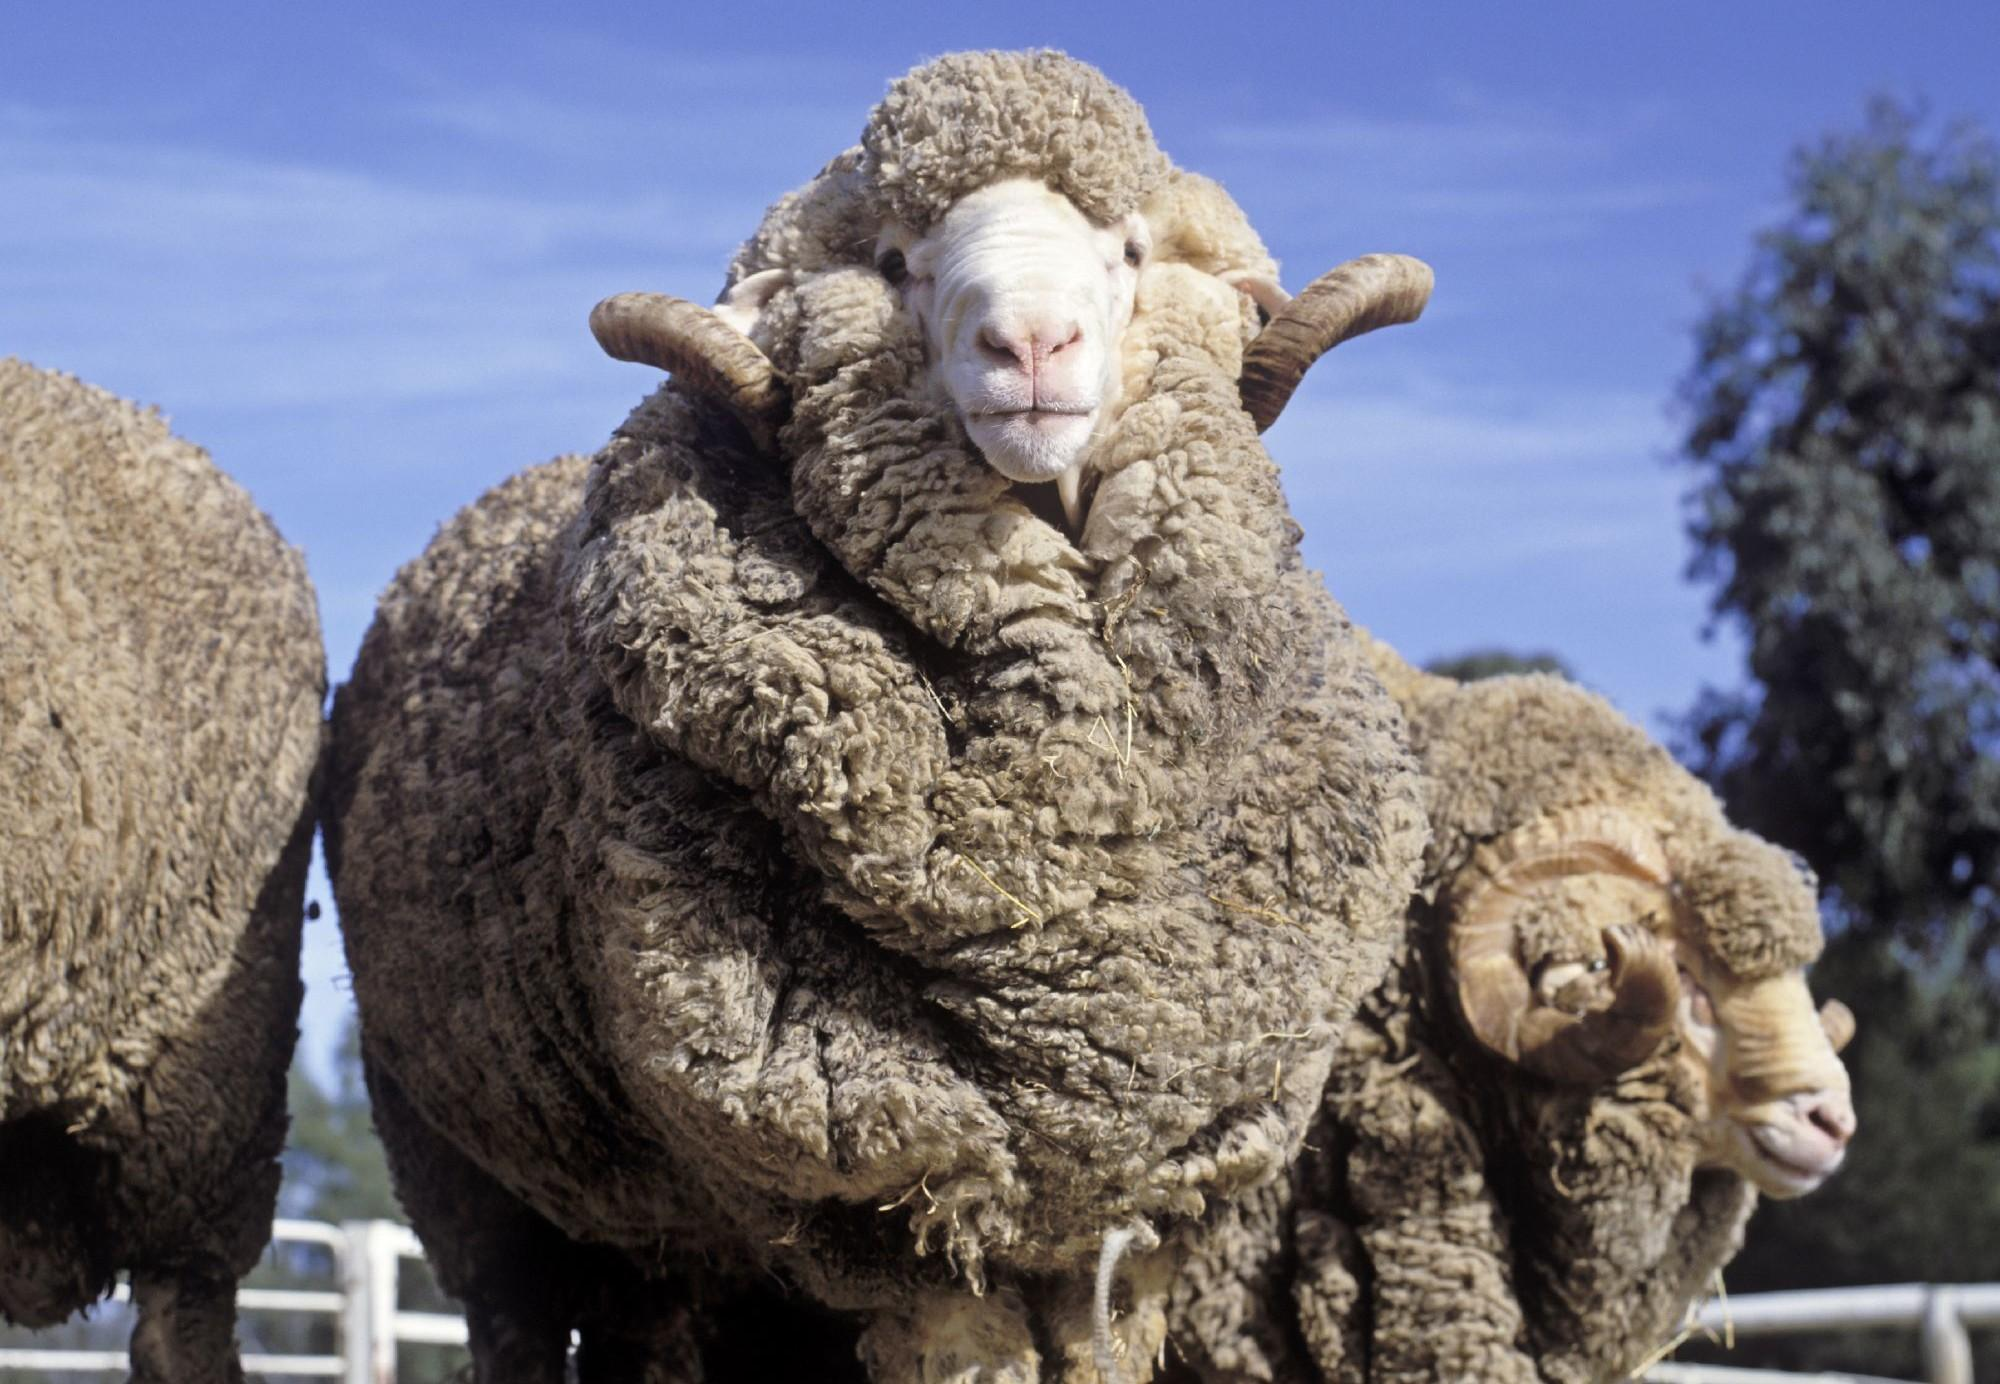 Sheep in Australia